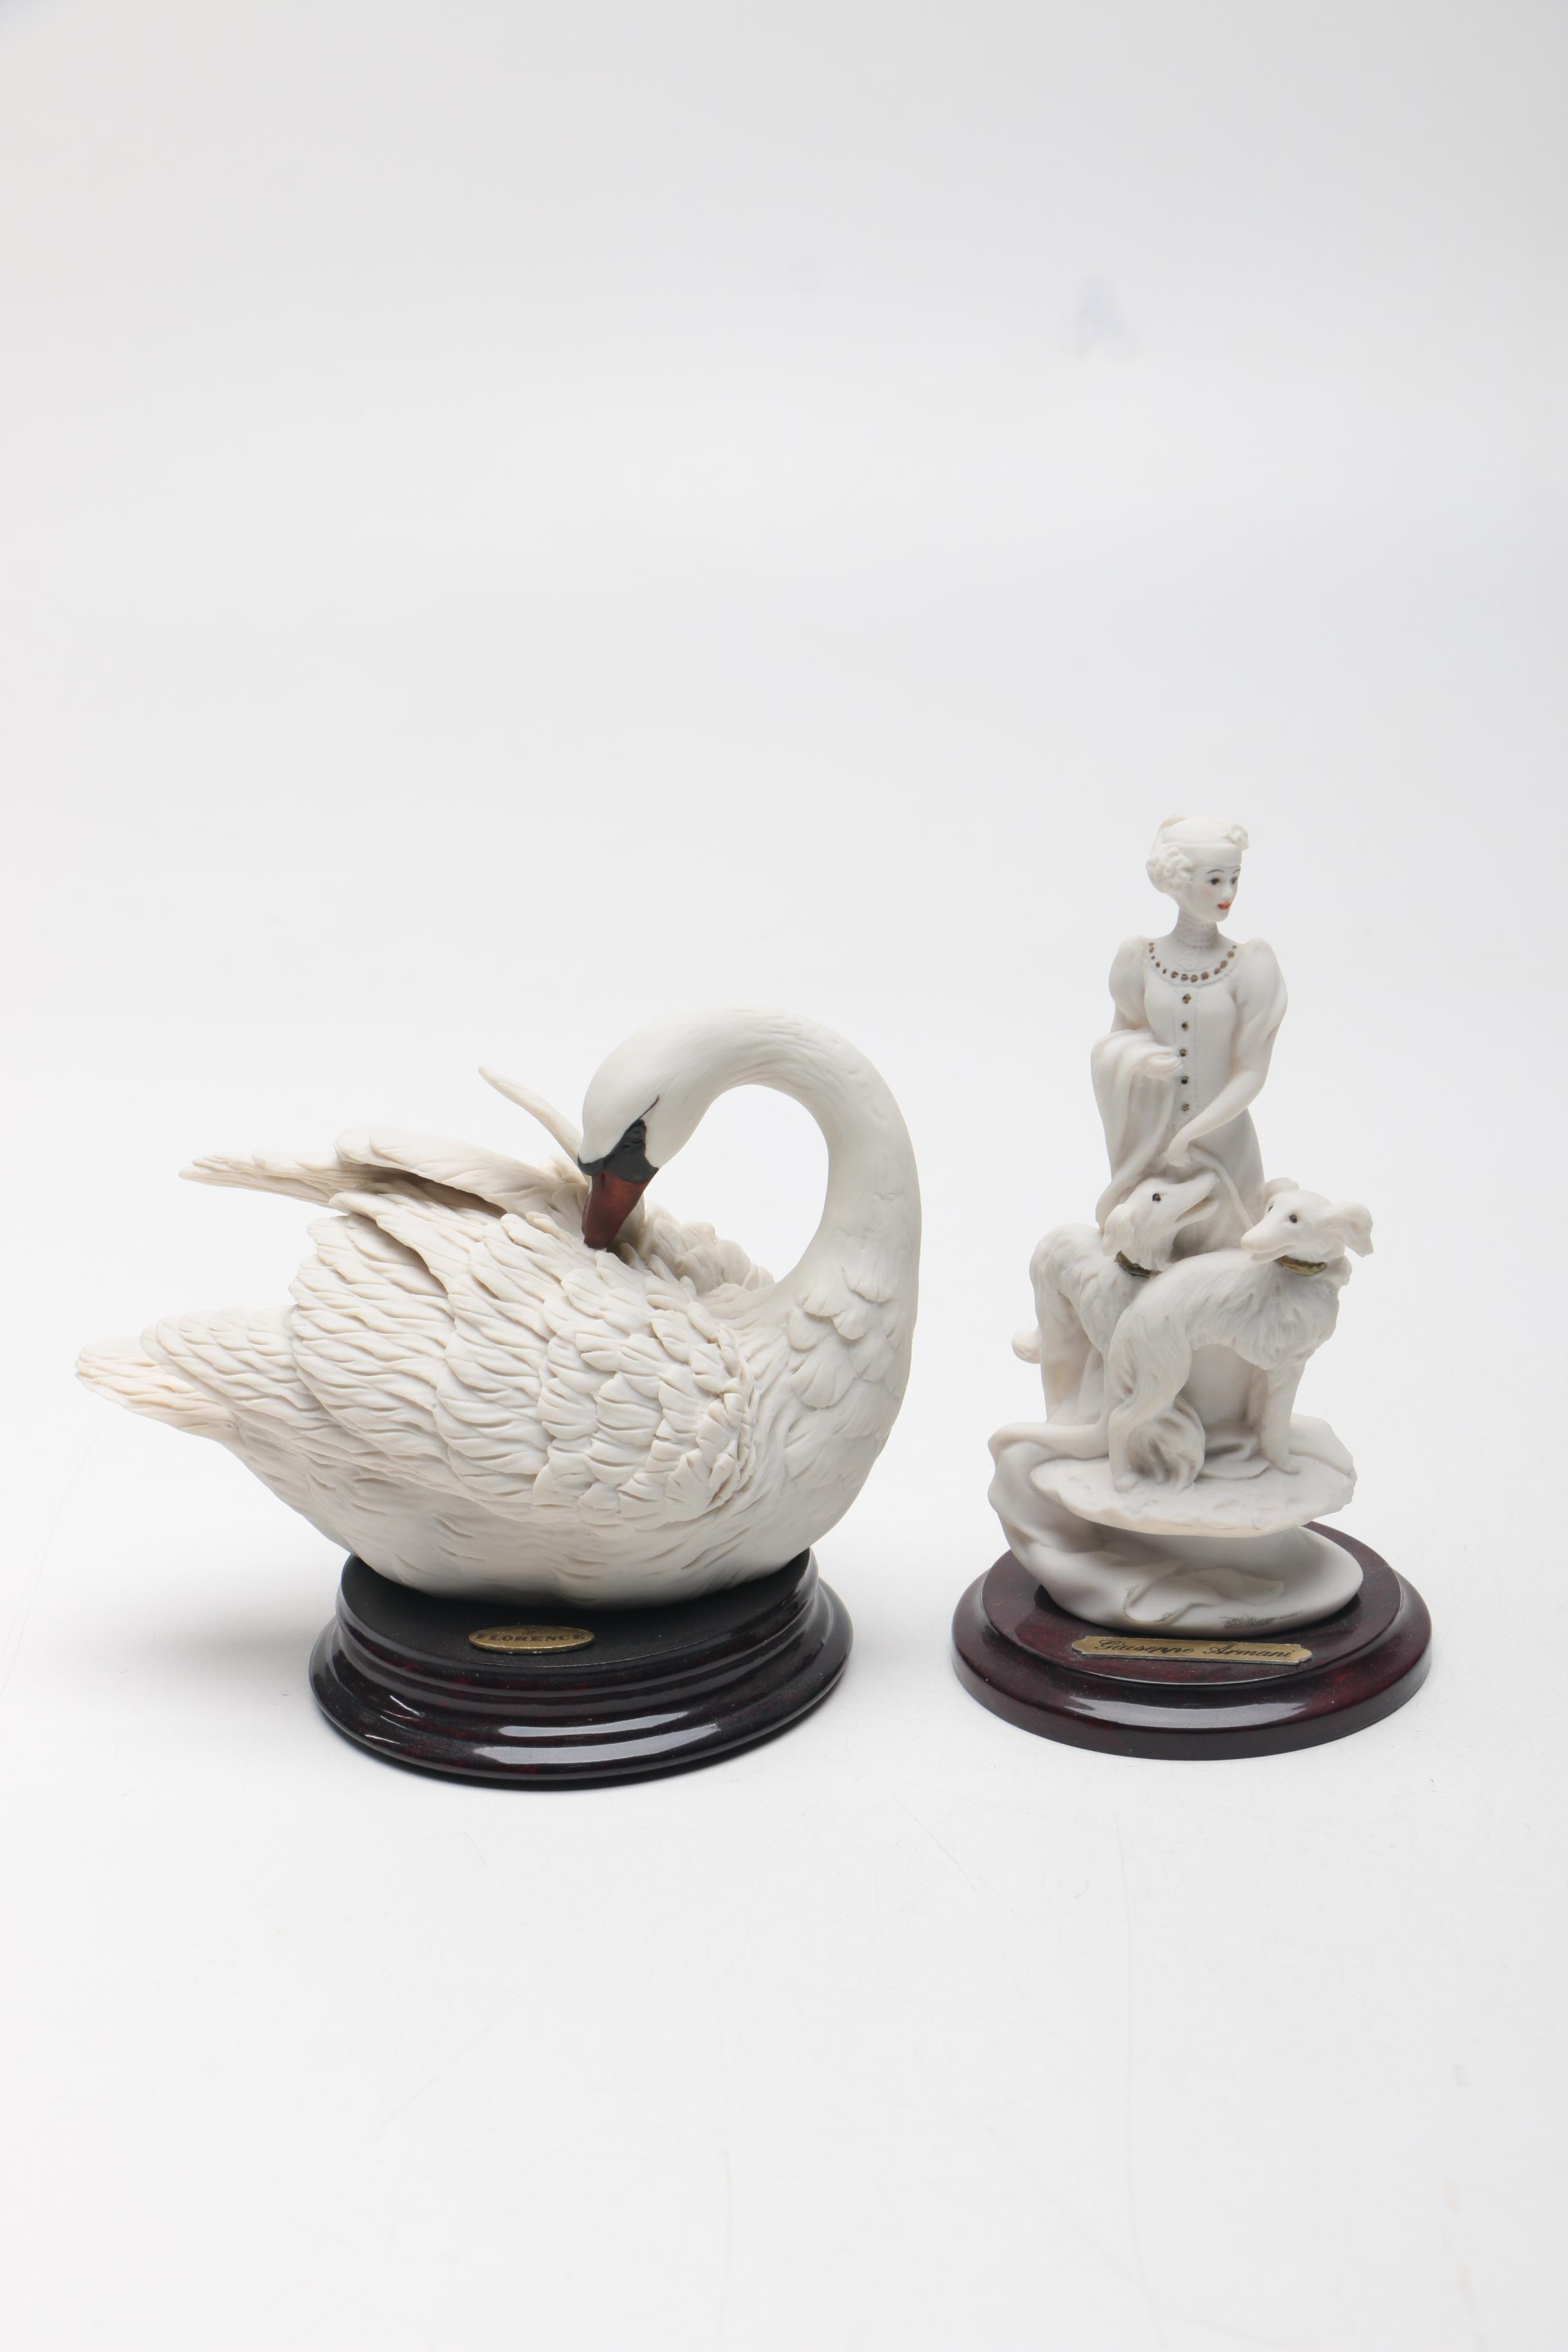 Pair of Figurines by Guiseppe Armani for Florence